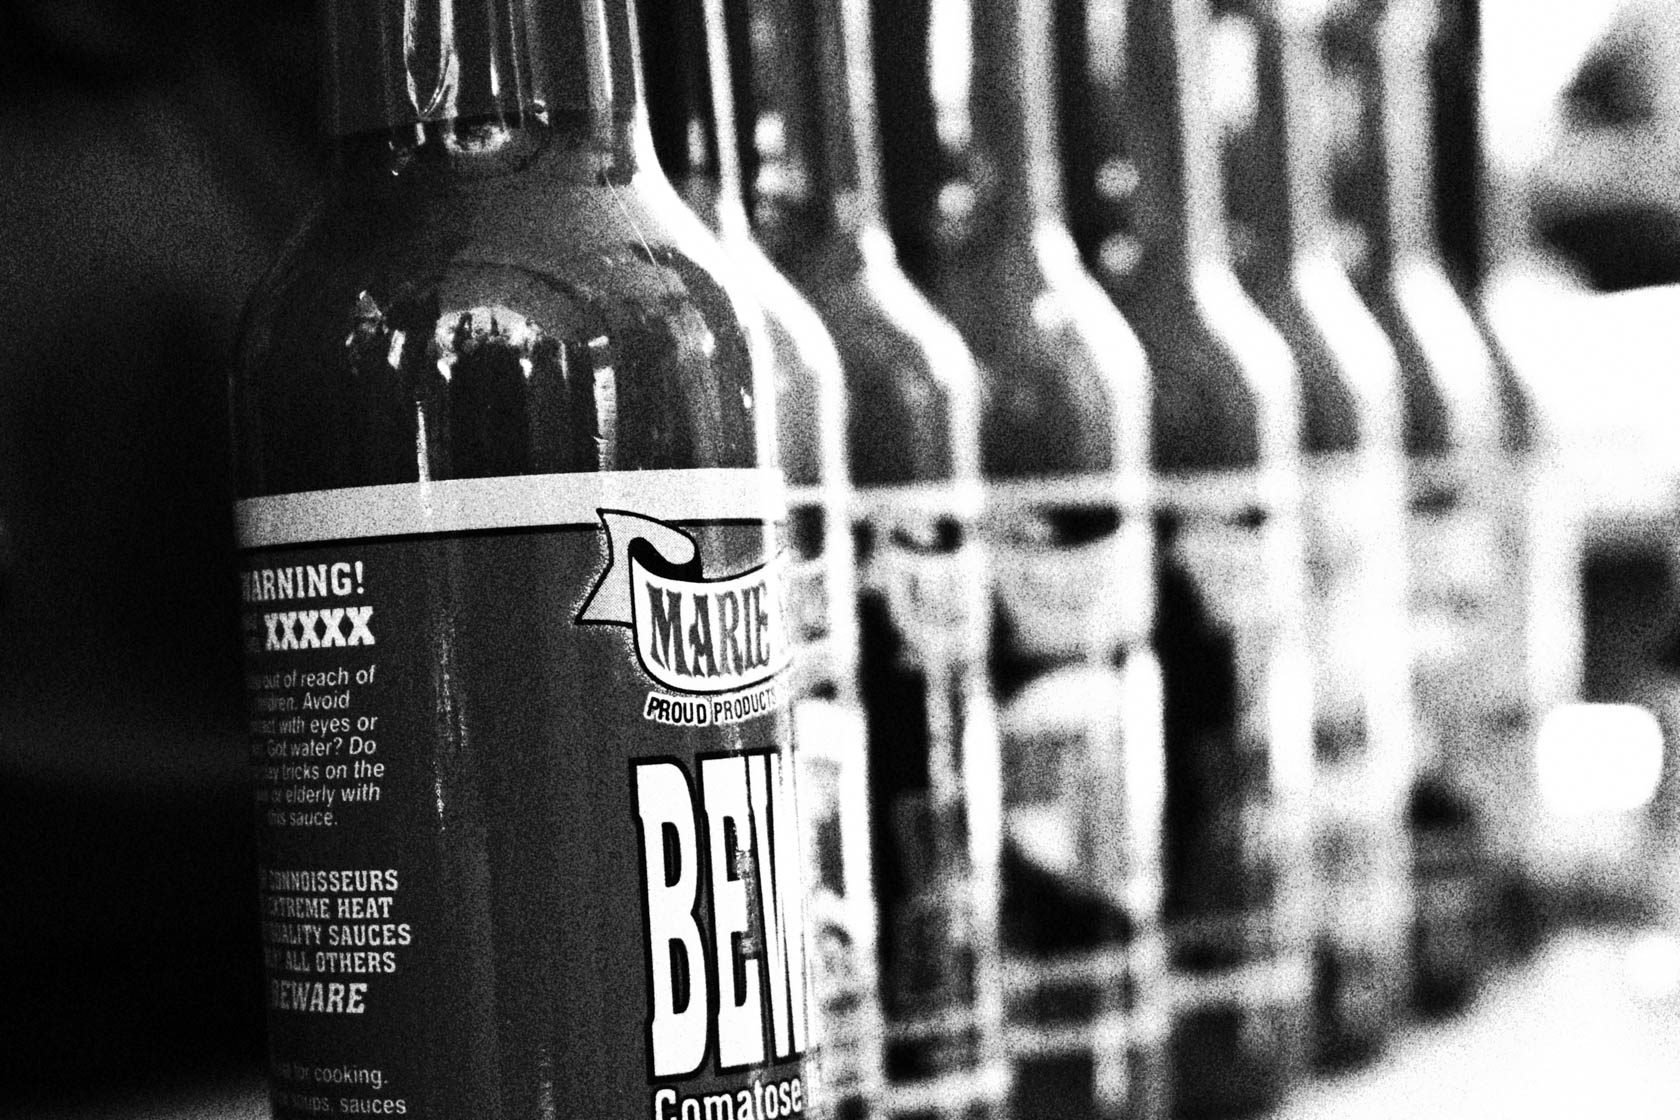 Beer bottles in black and white taken on Canon EOD100D DSLR camera